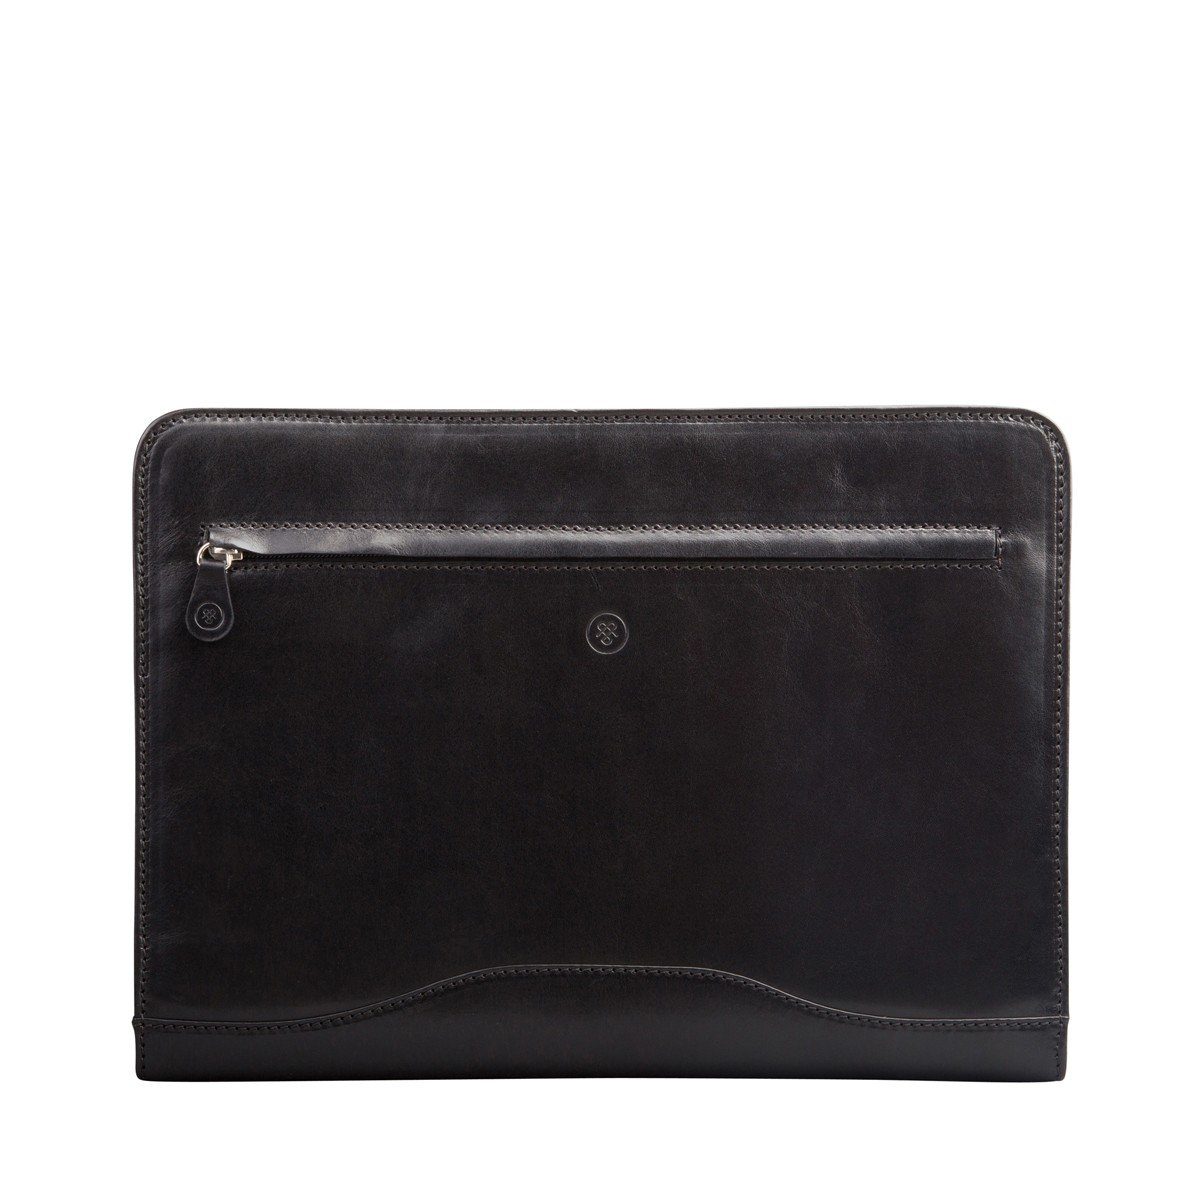 Maxwell Scott Personalized Black Leather Conference Folder with Ringbinder (The Veroli) by Maxwell Scott Bags (Image #2)